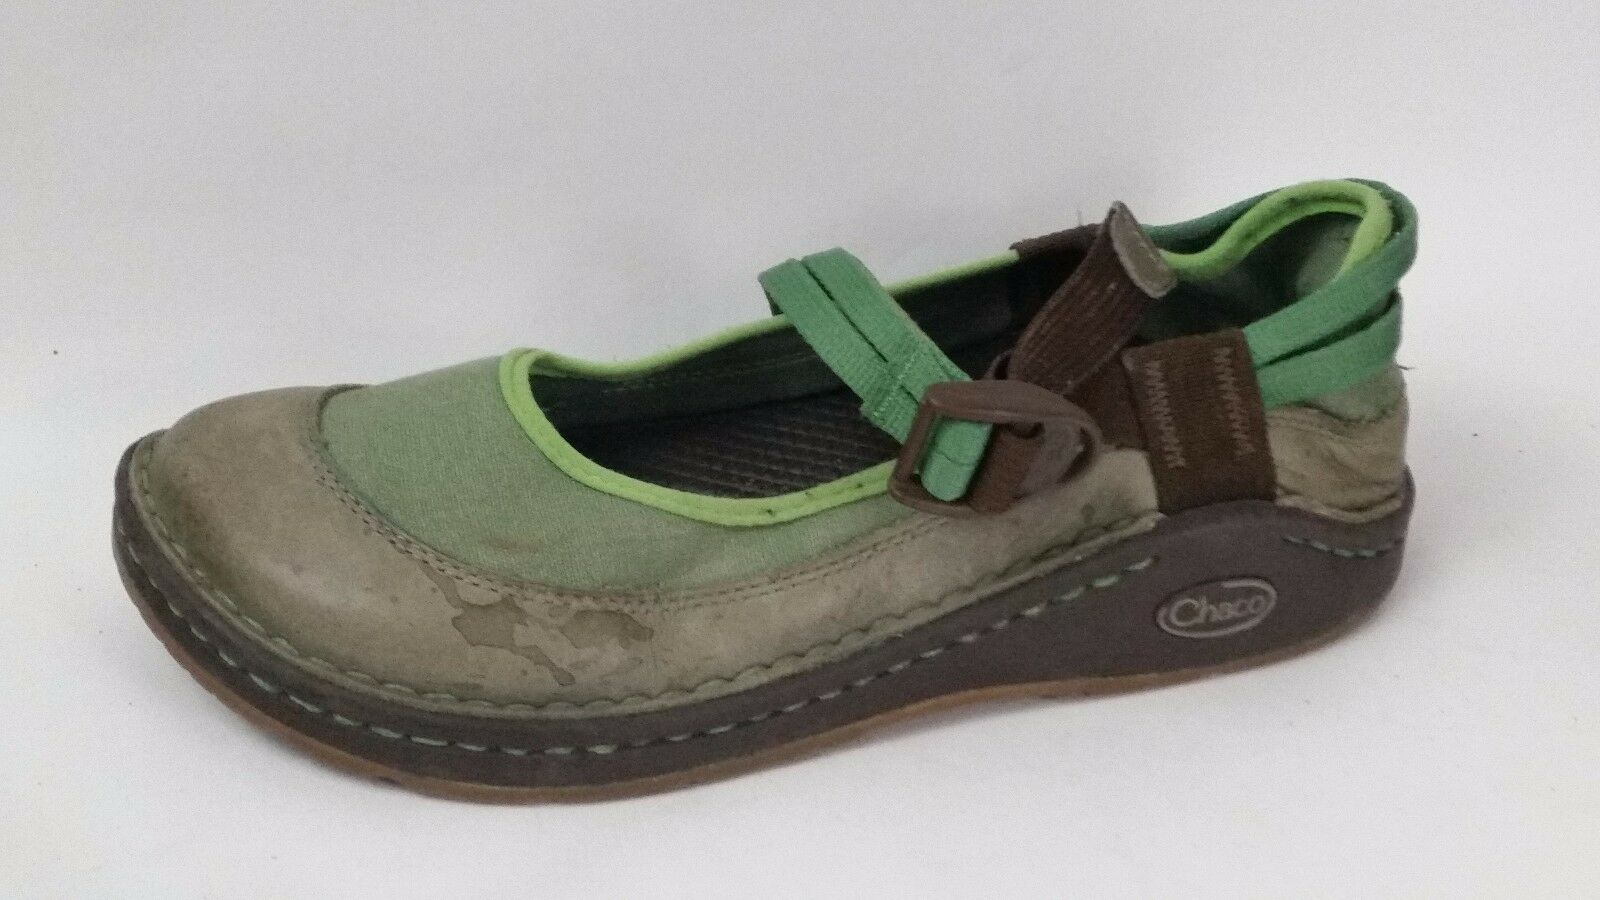 Chaco Womens 7.5 Med Green Brown Leather Mary Janes Sandals shoes Vibram Soles